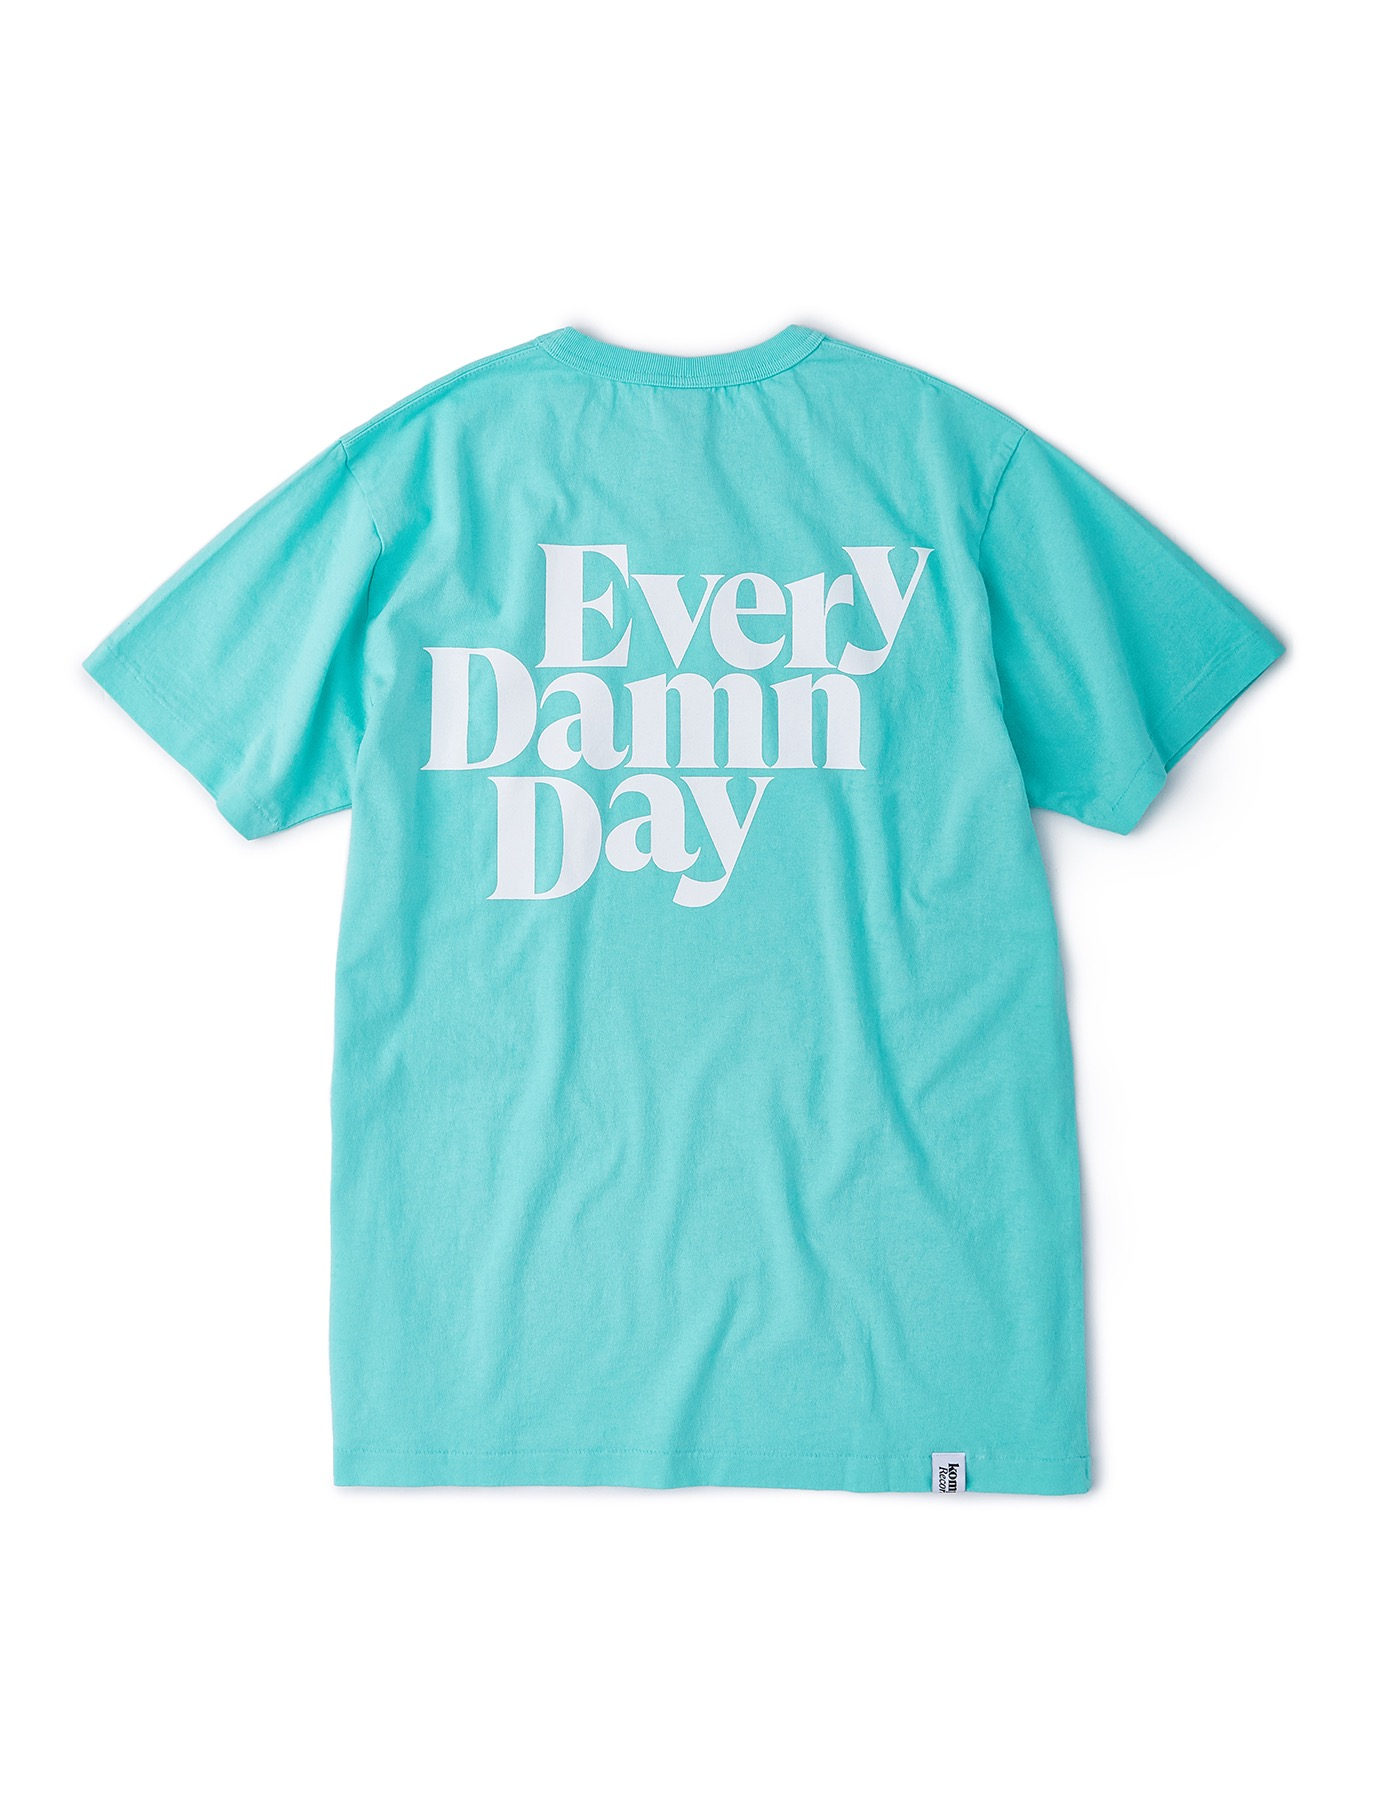 Every Damn Day Pocket T-shirts - Mint/White